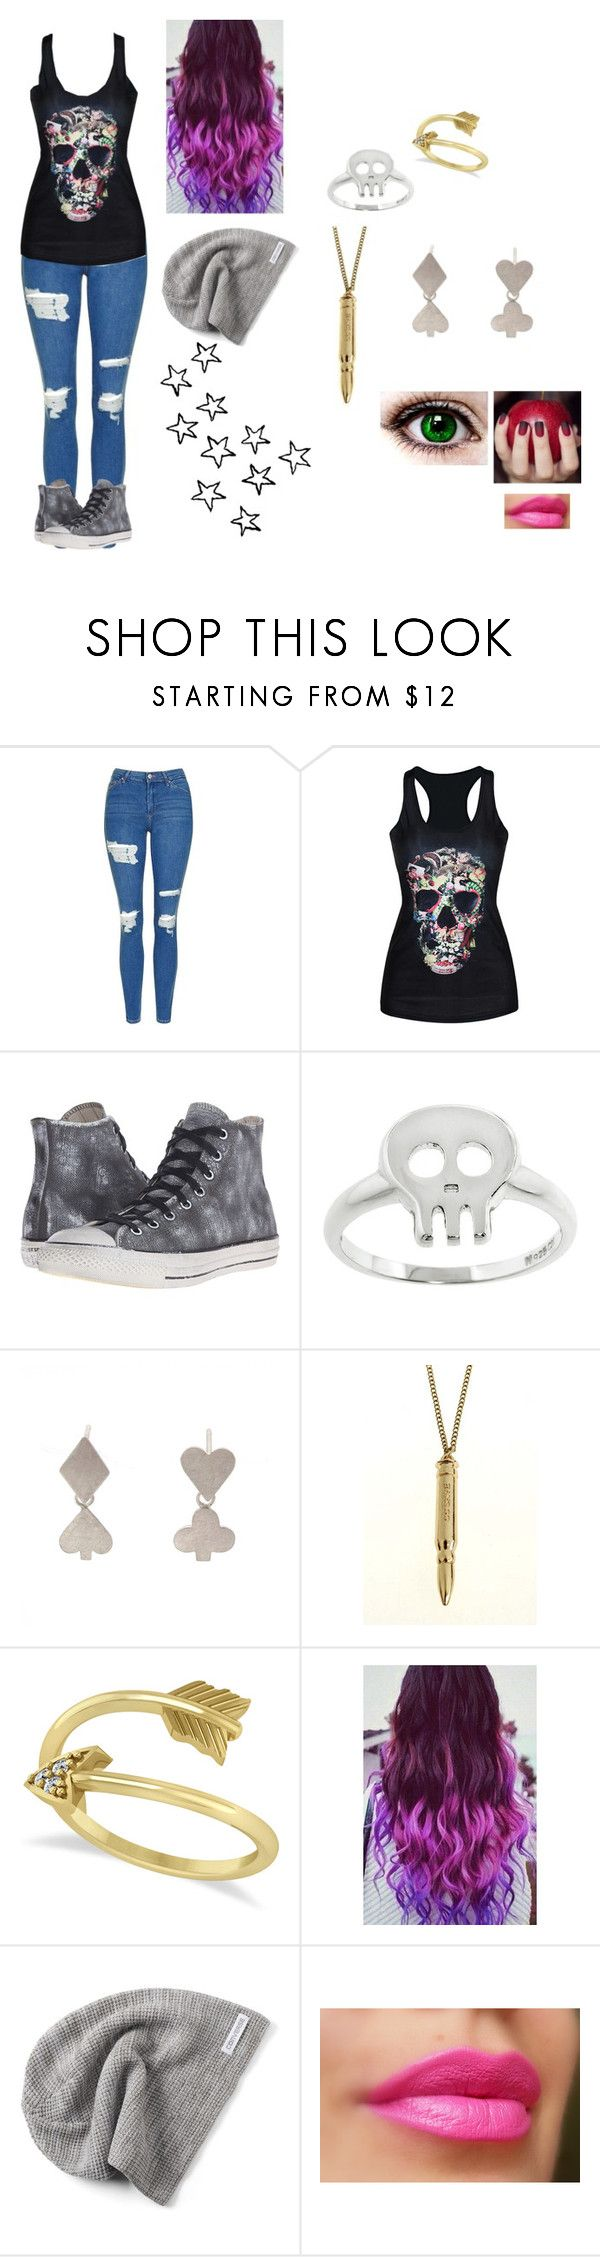 """""""Inspired By a Song"""" by sirengem ❤ liked on Polyvore featuring Topshop, Converse, Eternally Haute, Sian Bostwick Jewellery and Allurez"""